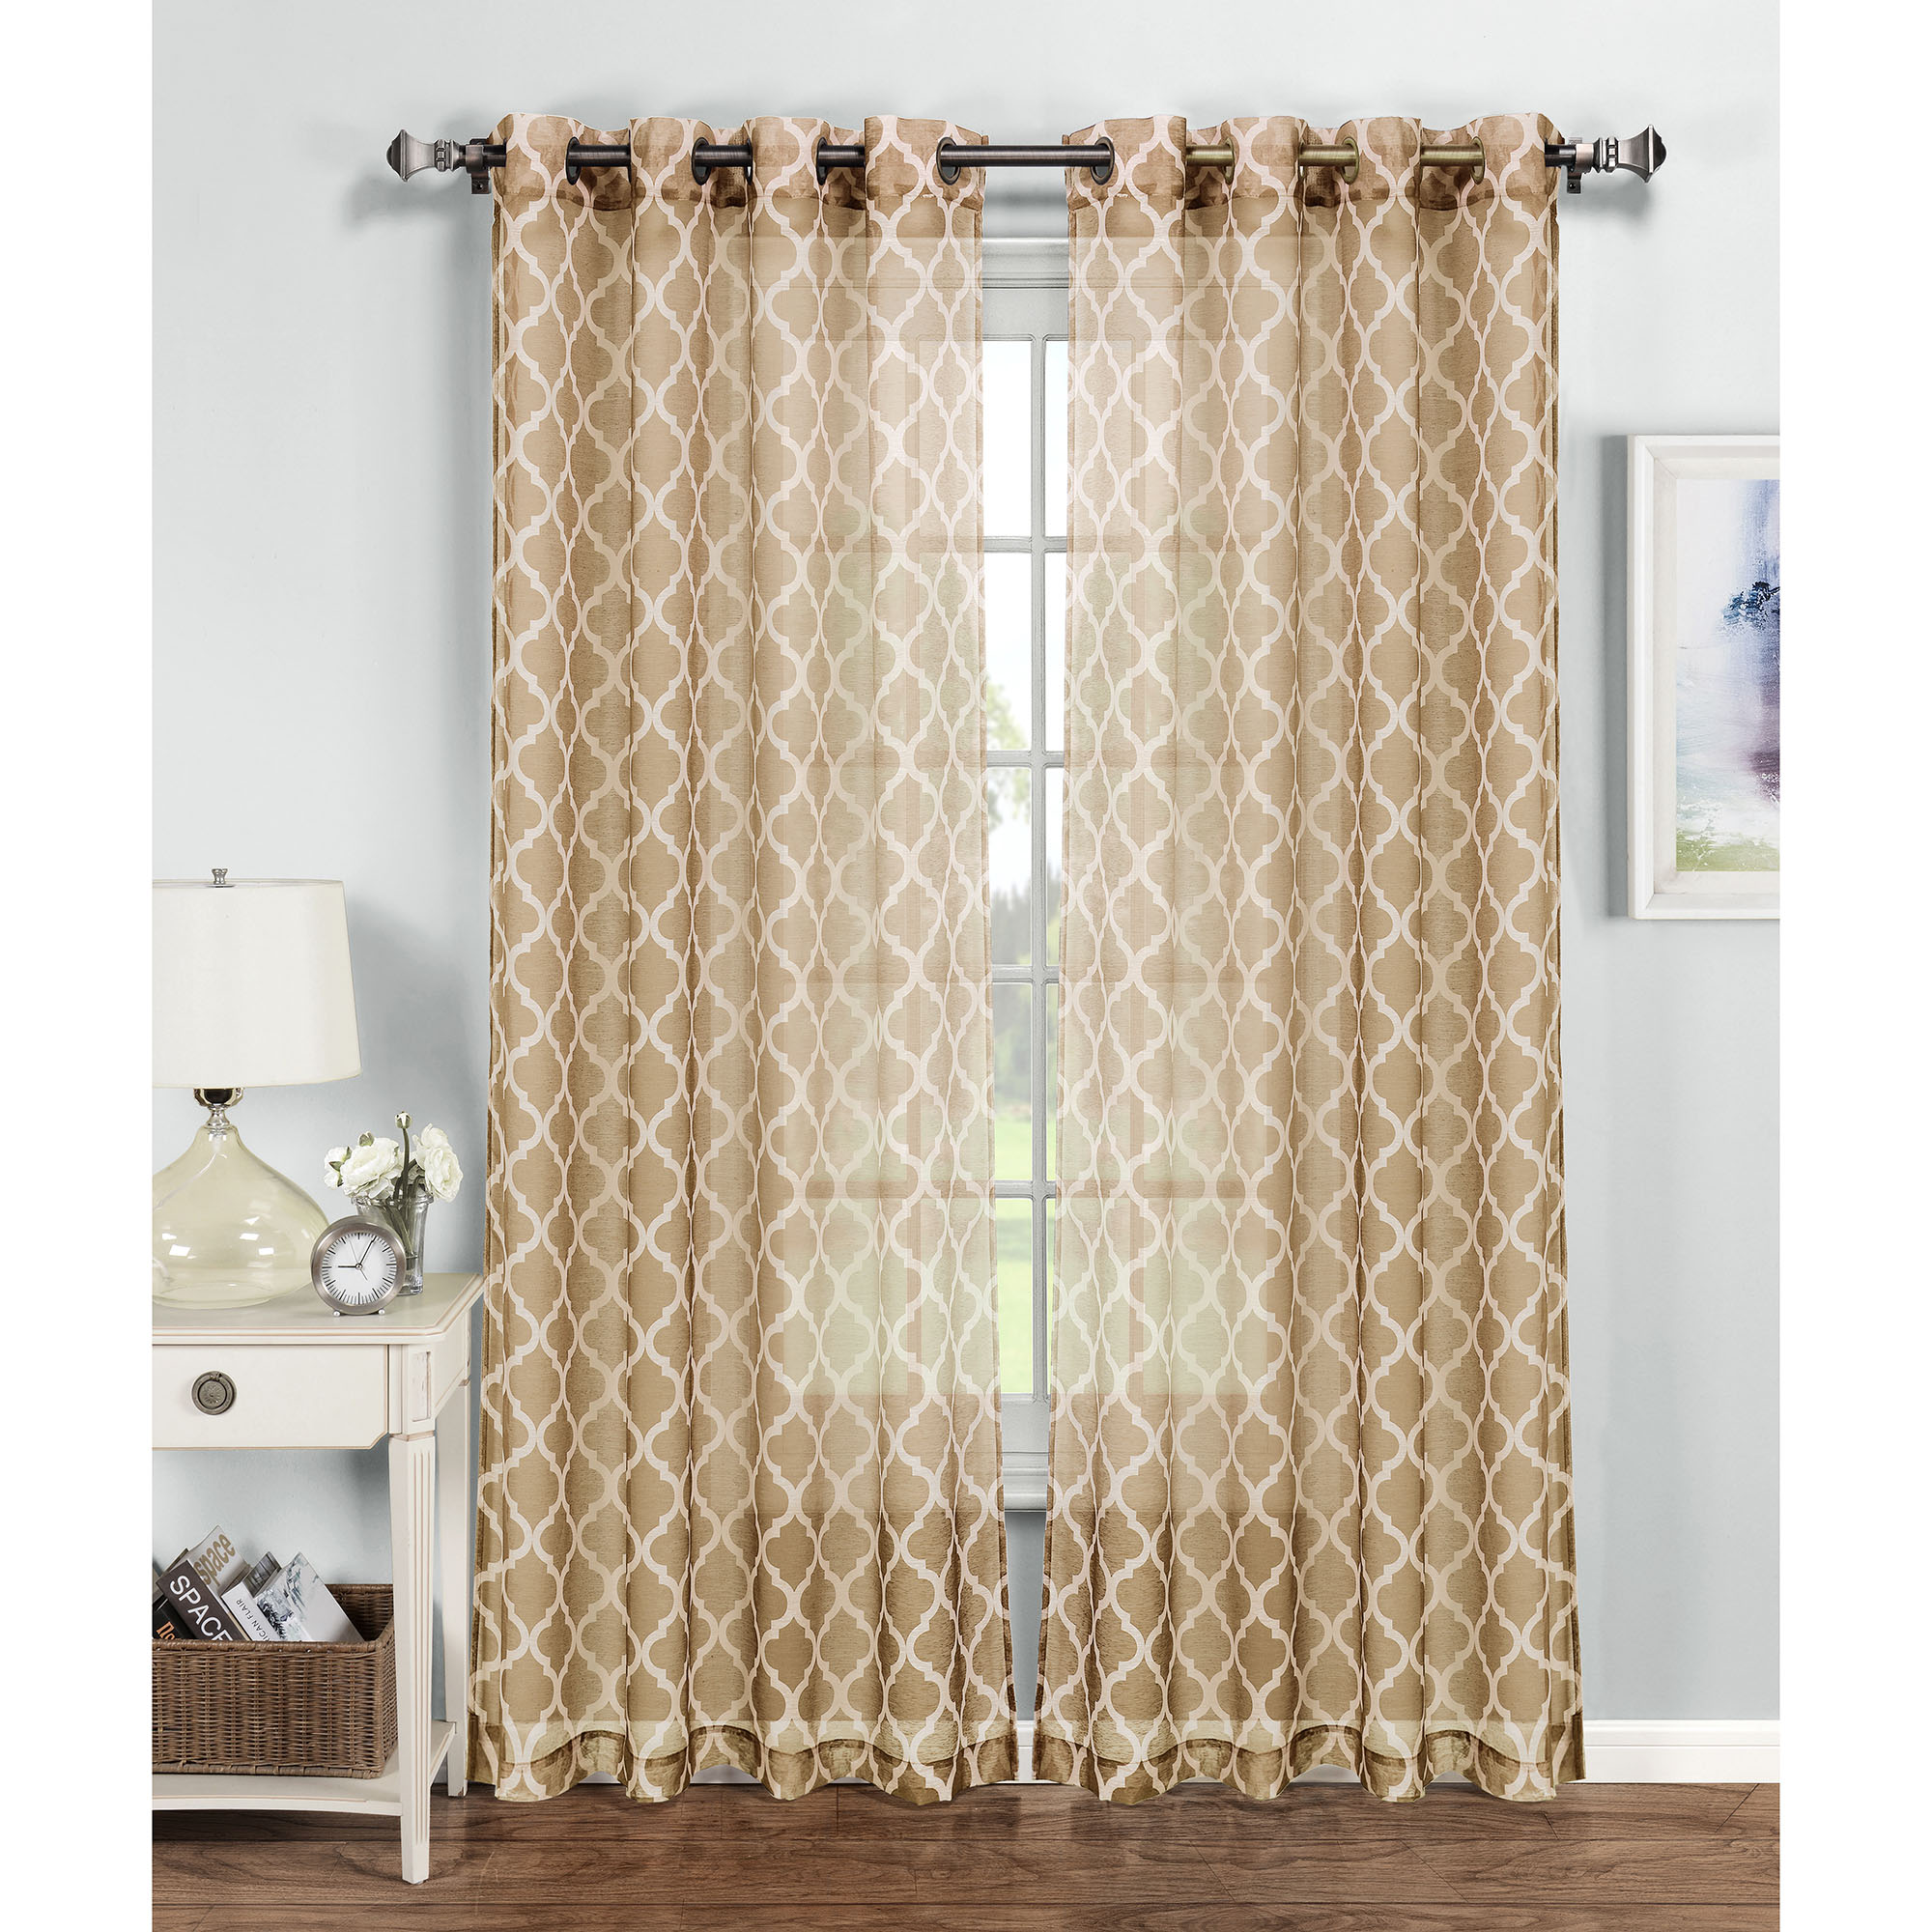 Quatrefoil Printed Sheer Extra Wide Grommet Curtain Panels by YMF Carpets Inc.